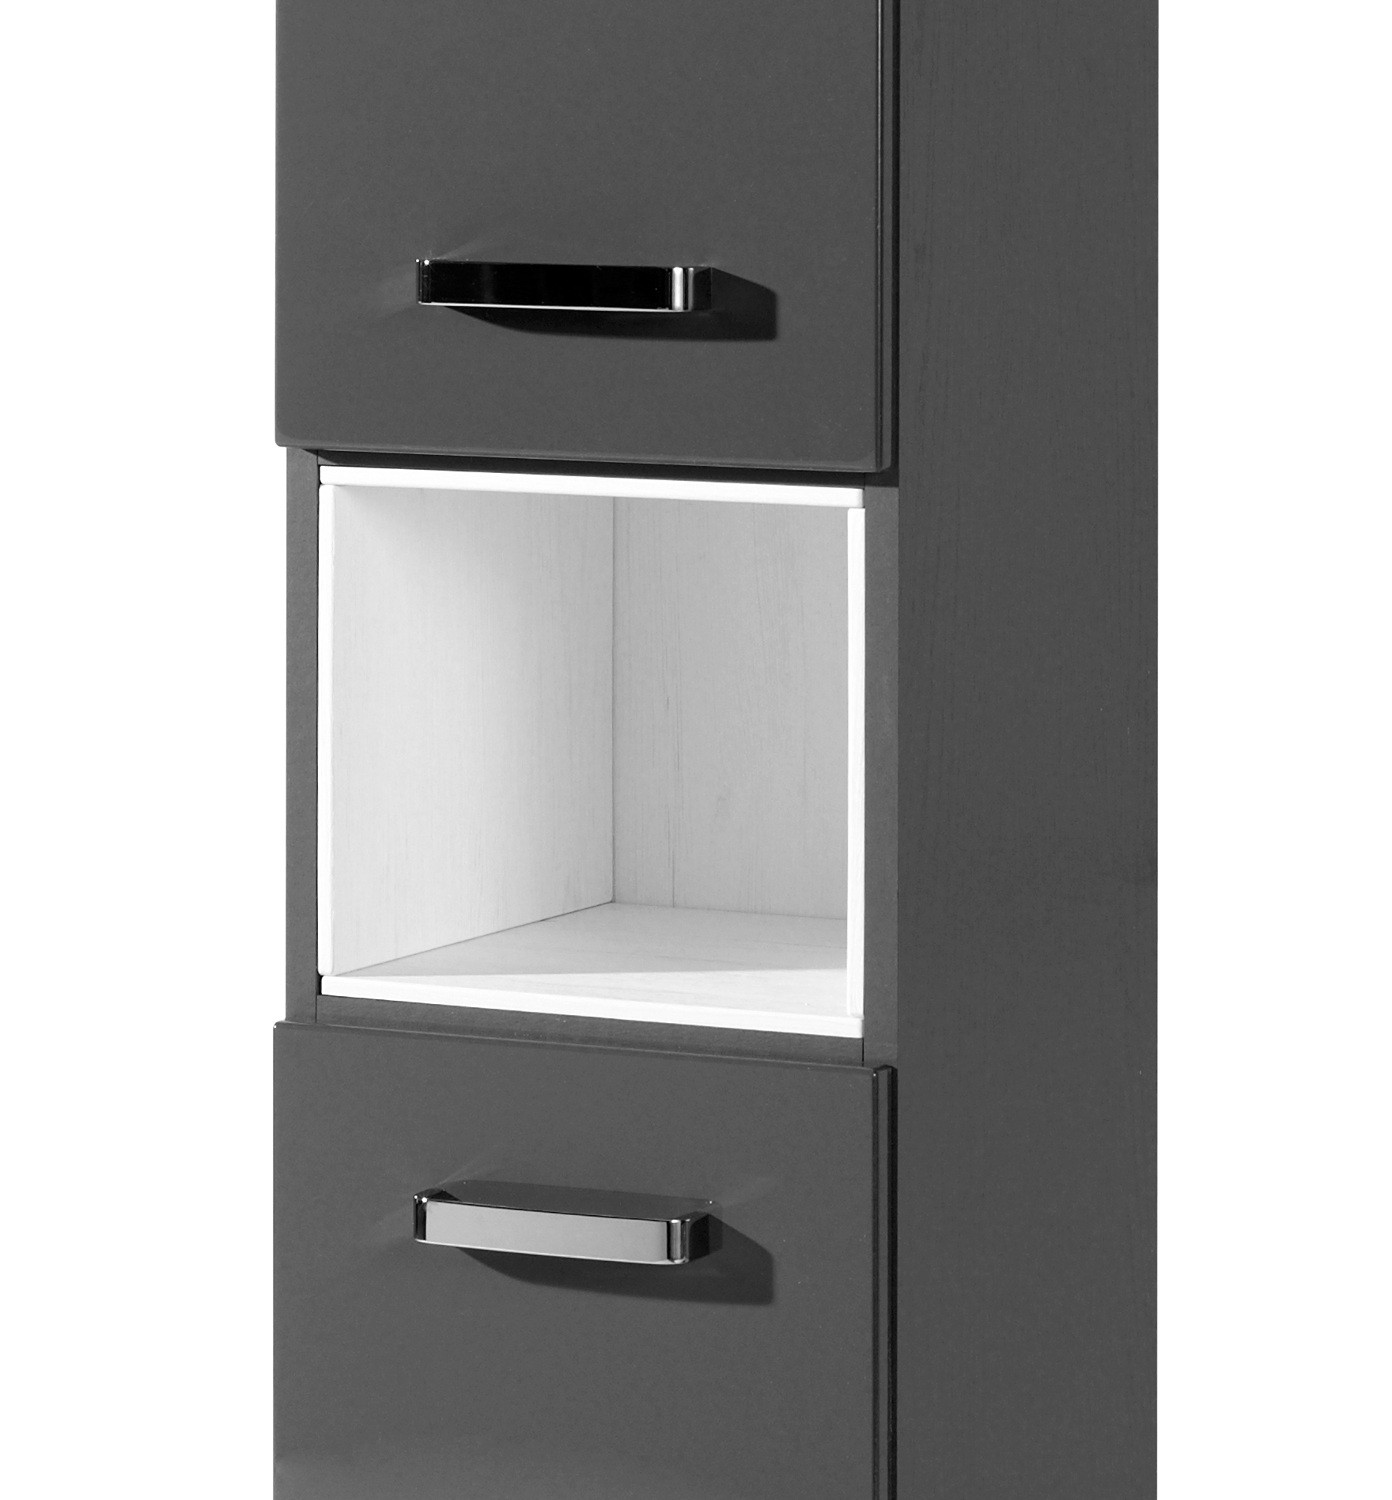 bad hochschrank ancona 2 t rig 1 regalfach 30 cm breit hochglanz grau bad bad hochschr nke. Black Bedroom Furniture Sets. Home Design Ideas